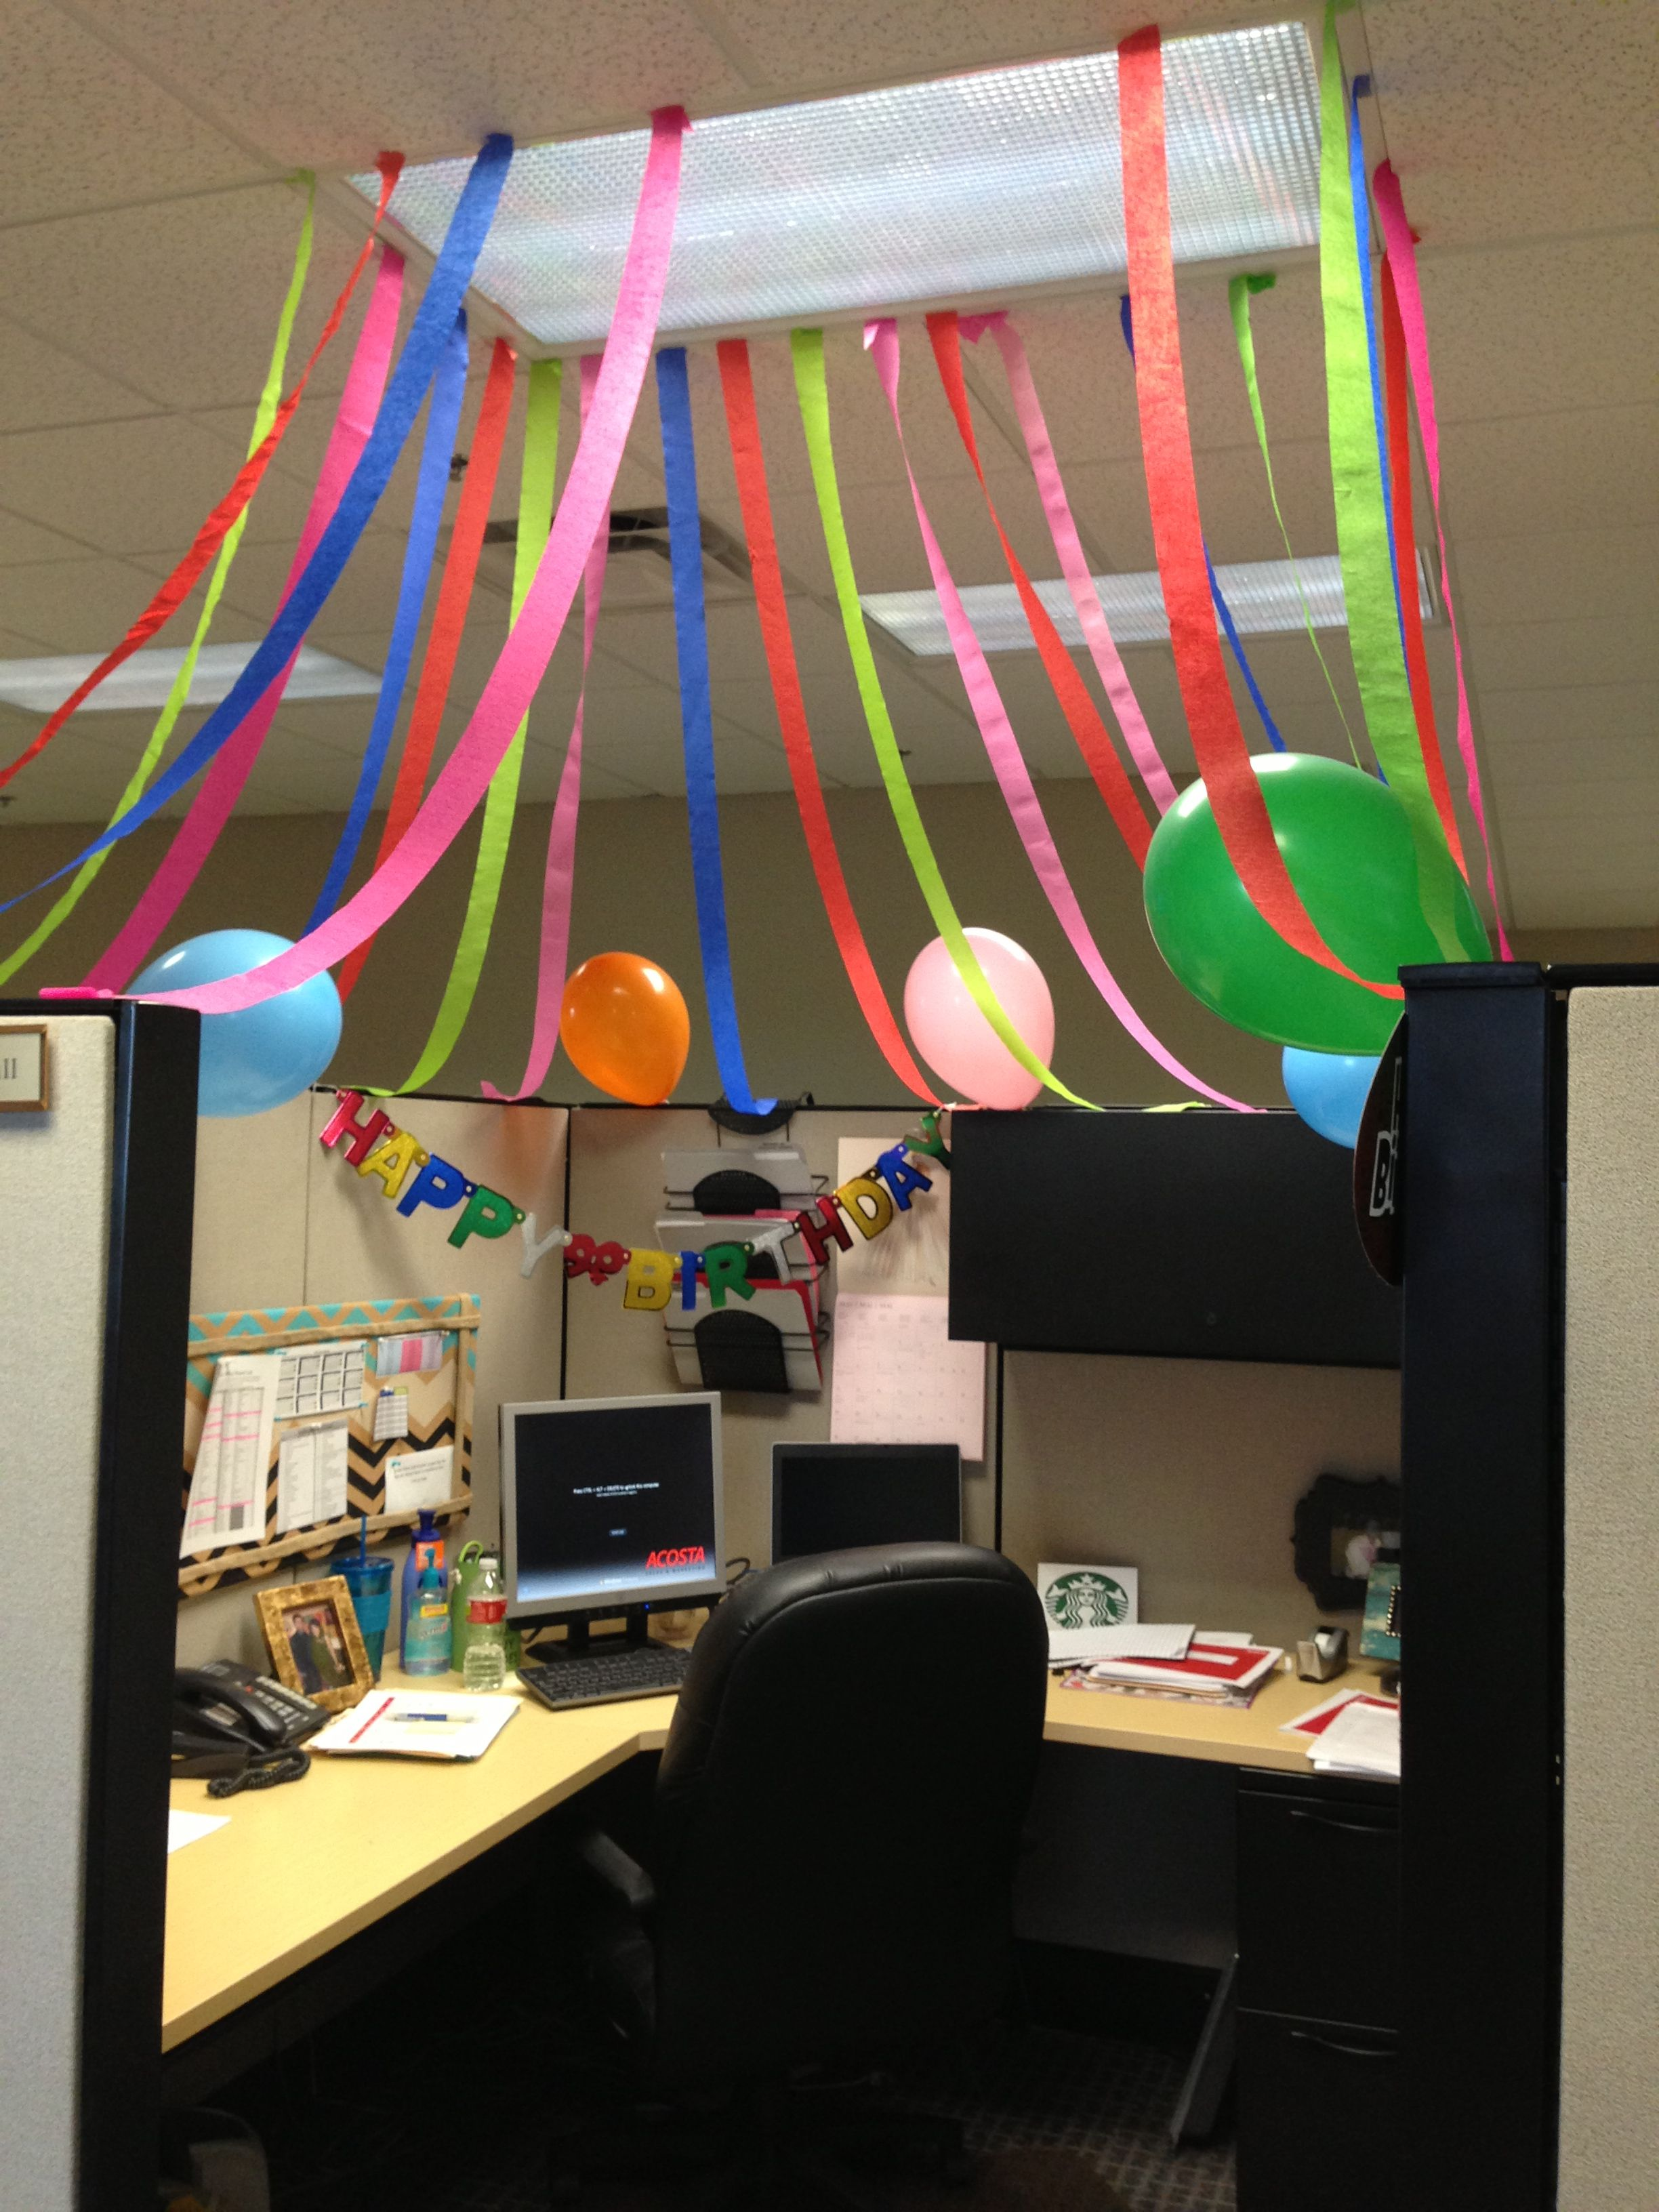 Office Cube Birthday Celebration Cubicle Birthday Decorations Office Party Decorations Office Birthday